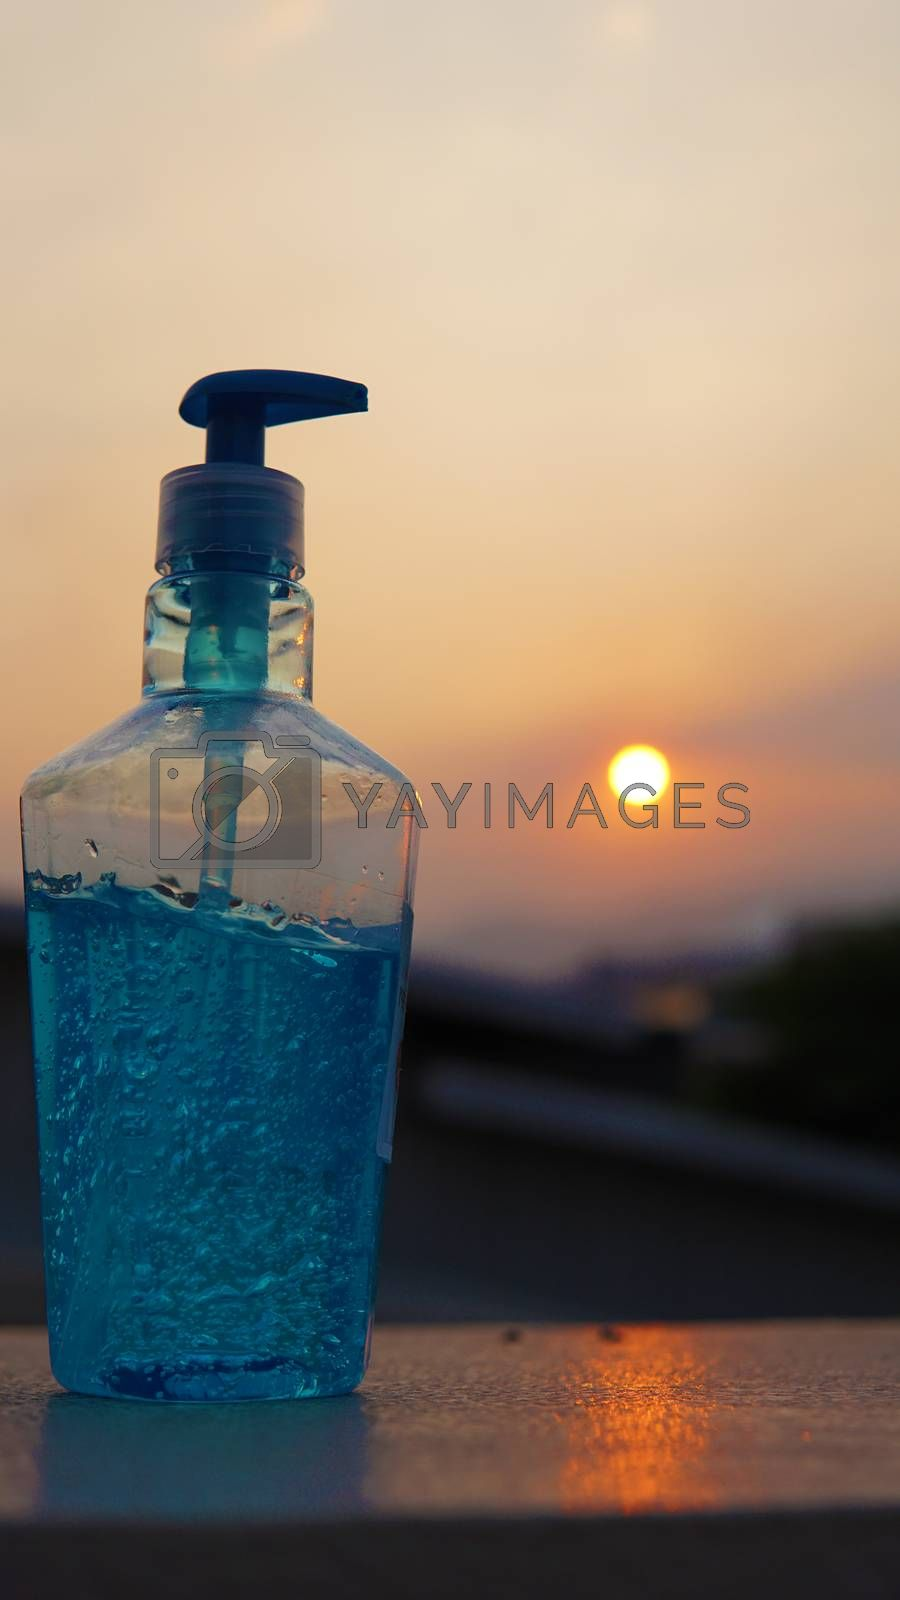 Dispenser bottles of alcohol based gel hand sanitizers to keep hands from germs and bacteria during the Covid-19 or Coronavirus pandemic.